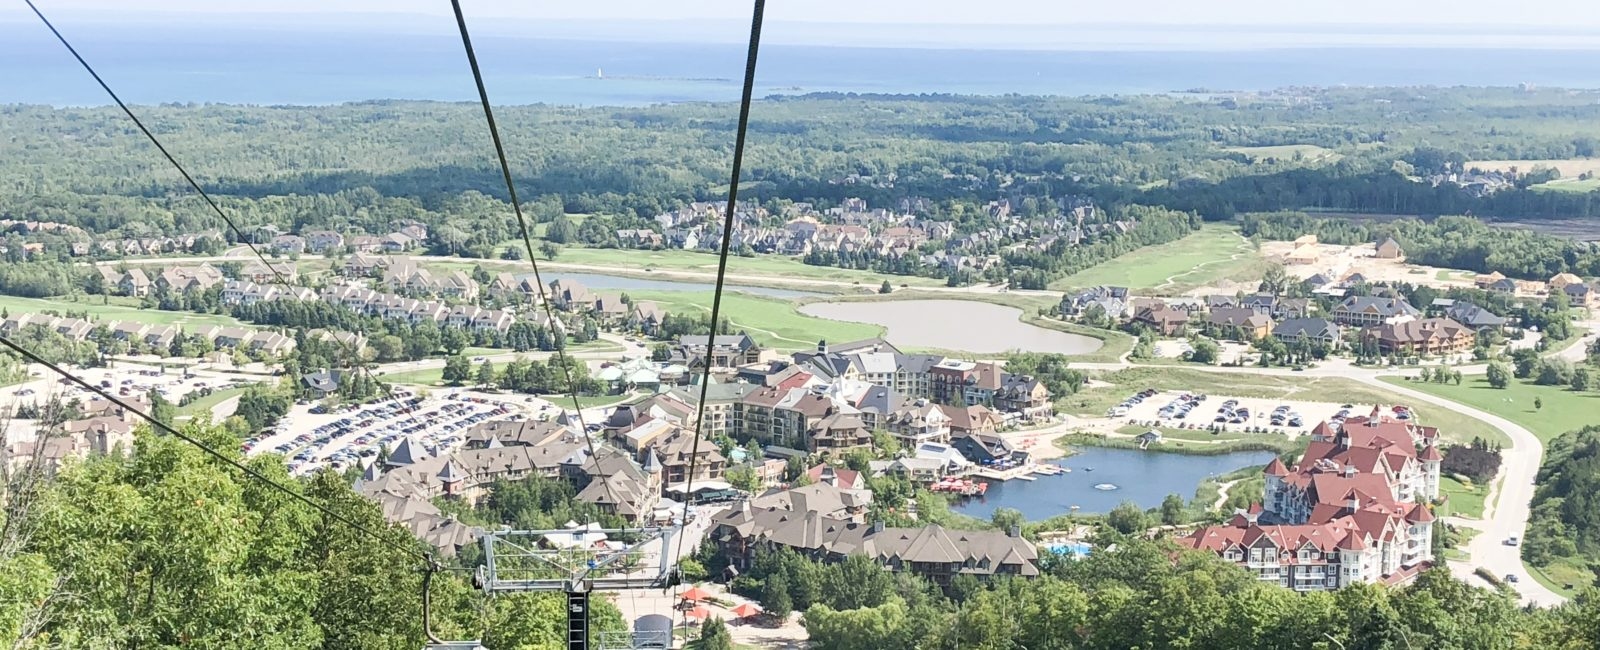 5 Activities to do as a family at Blue Mountain Resort!